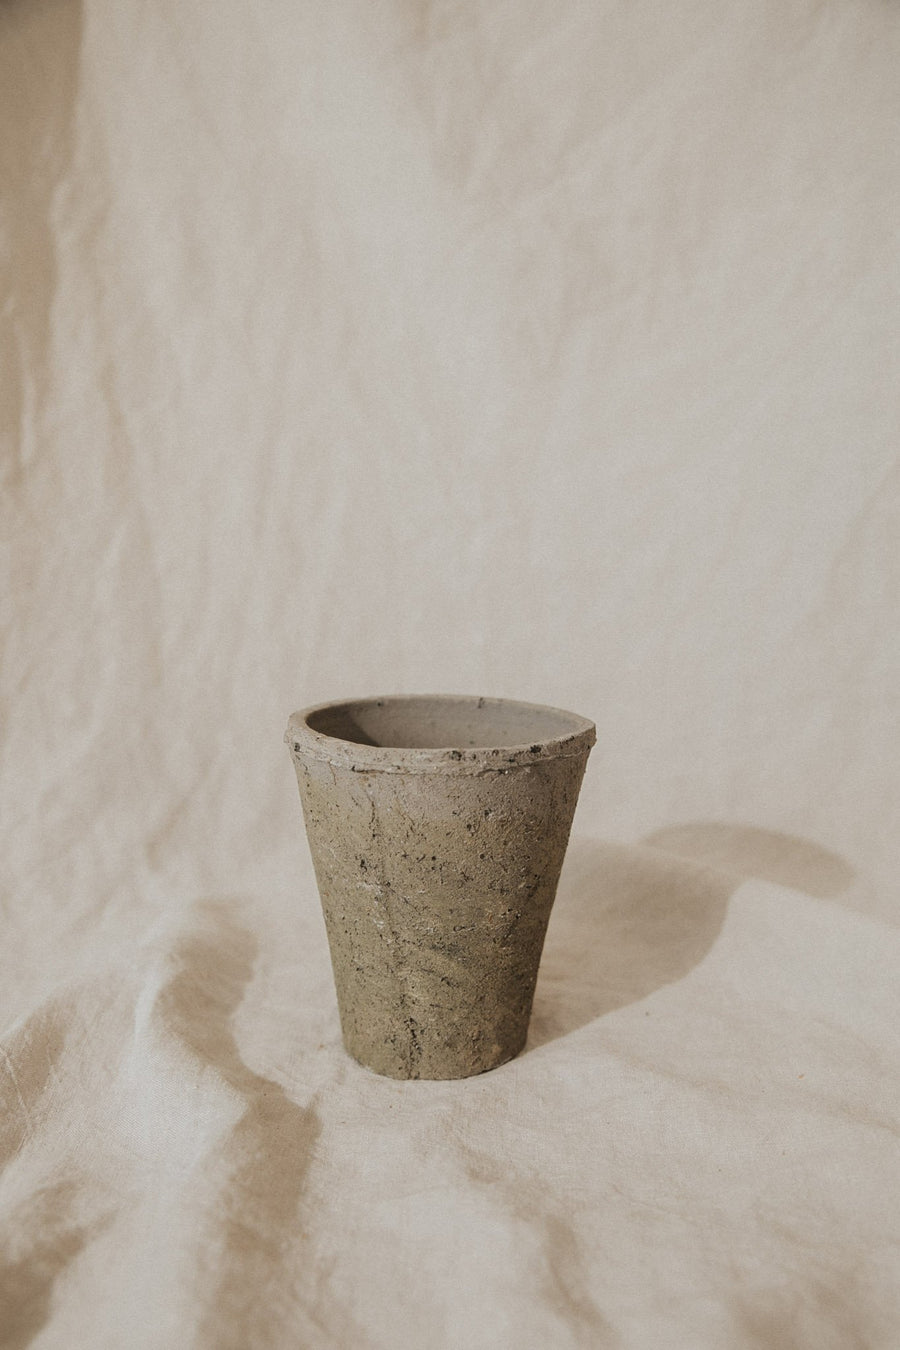 Homart Objects Petite / Moss Grey / FINAL SALE Moss Grey Rustic Terracotta Pots